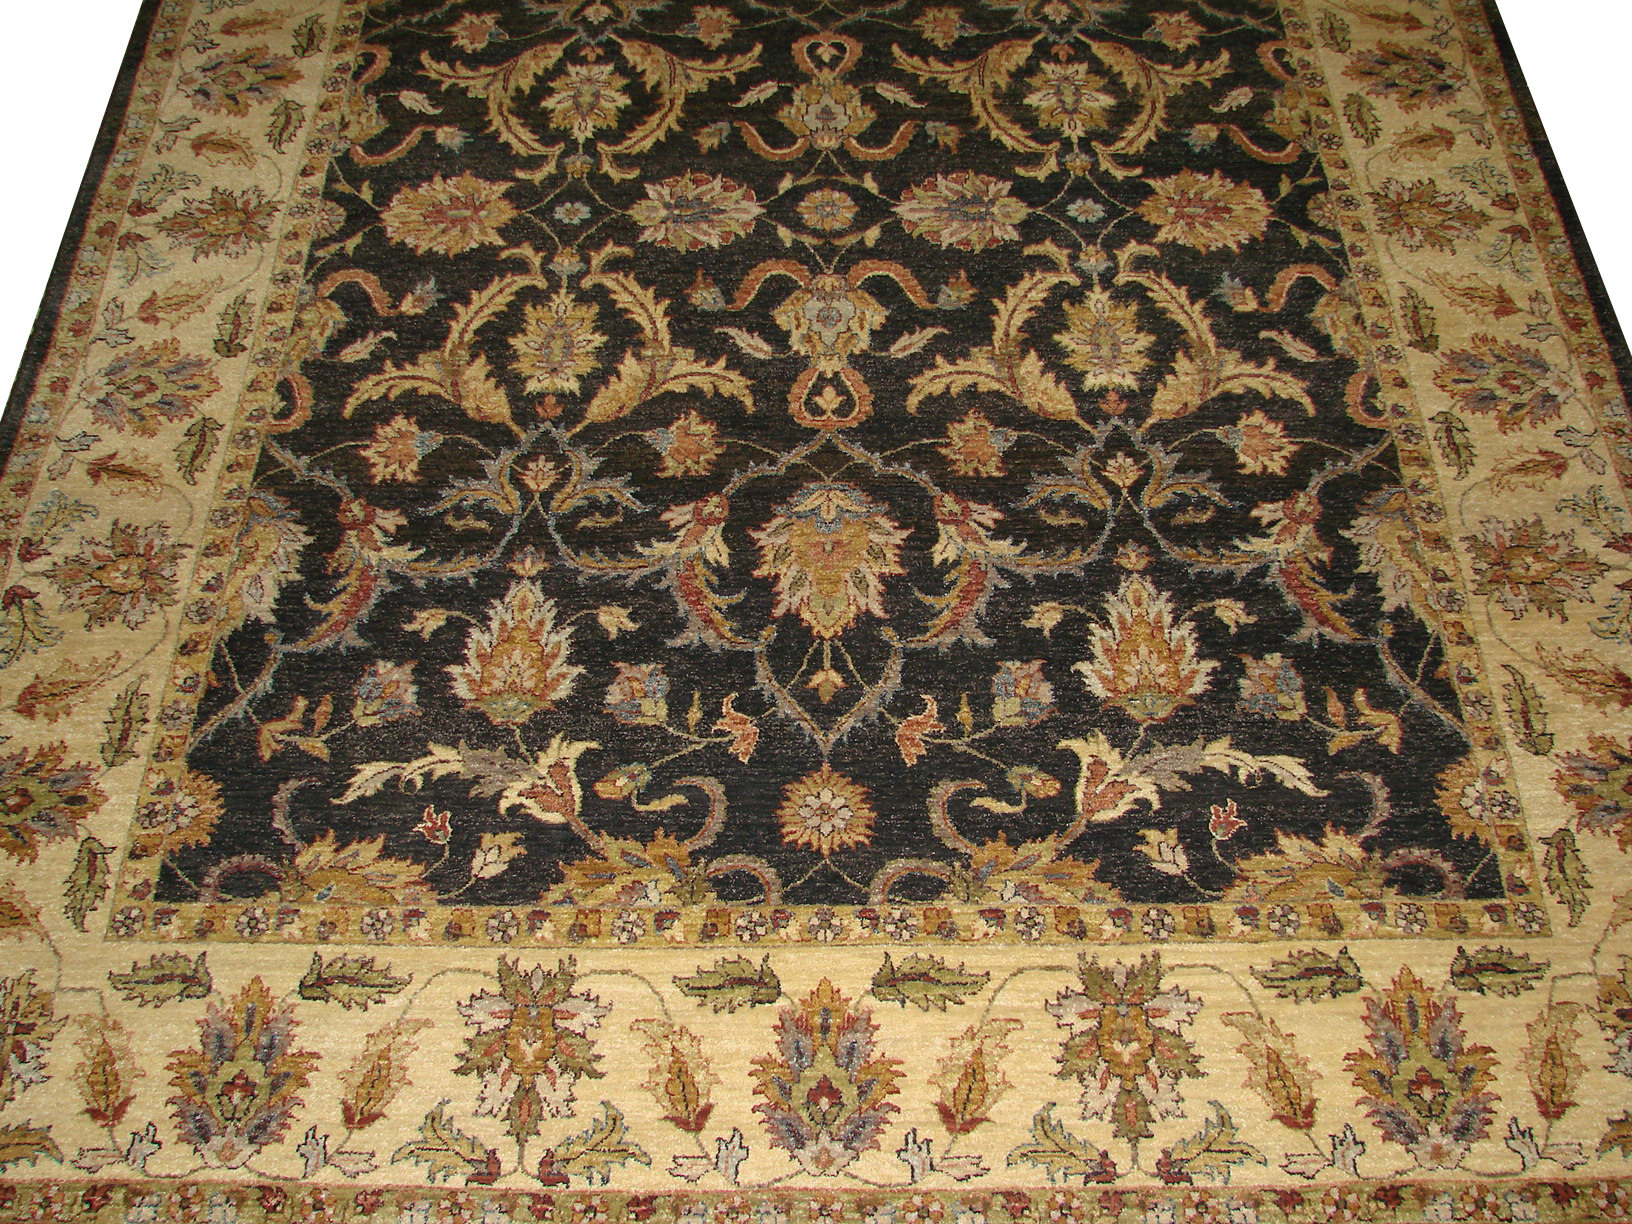 8x10 Traditional Hand Knotted Wool Area Rug - MR2860